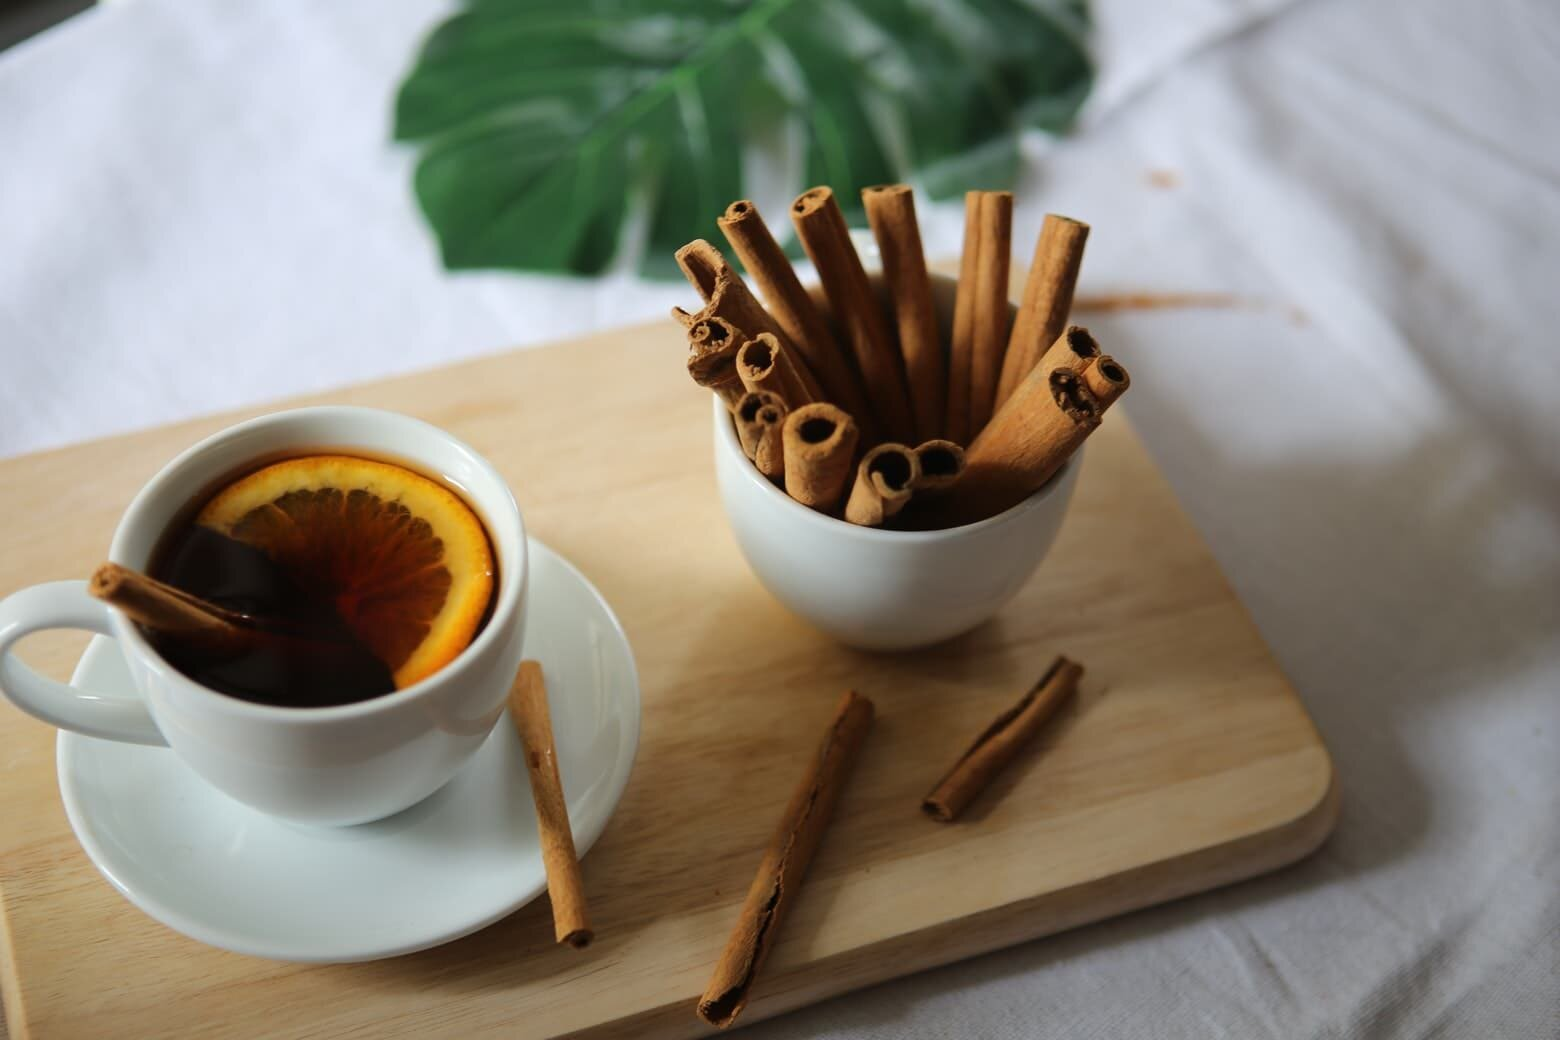 cinnamon sticks with tea